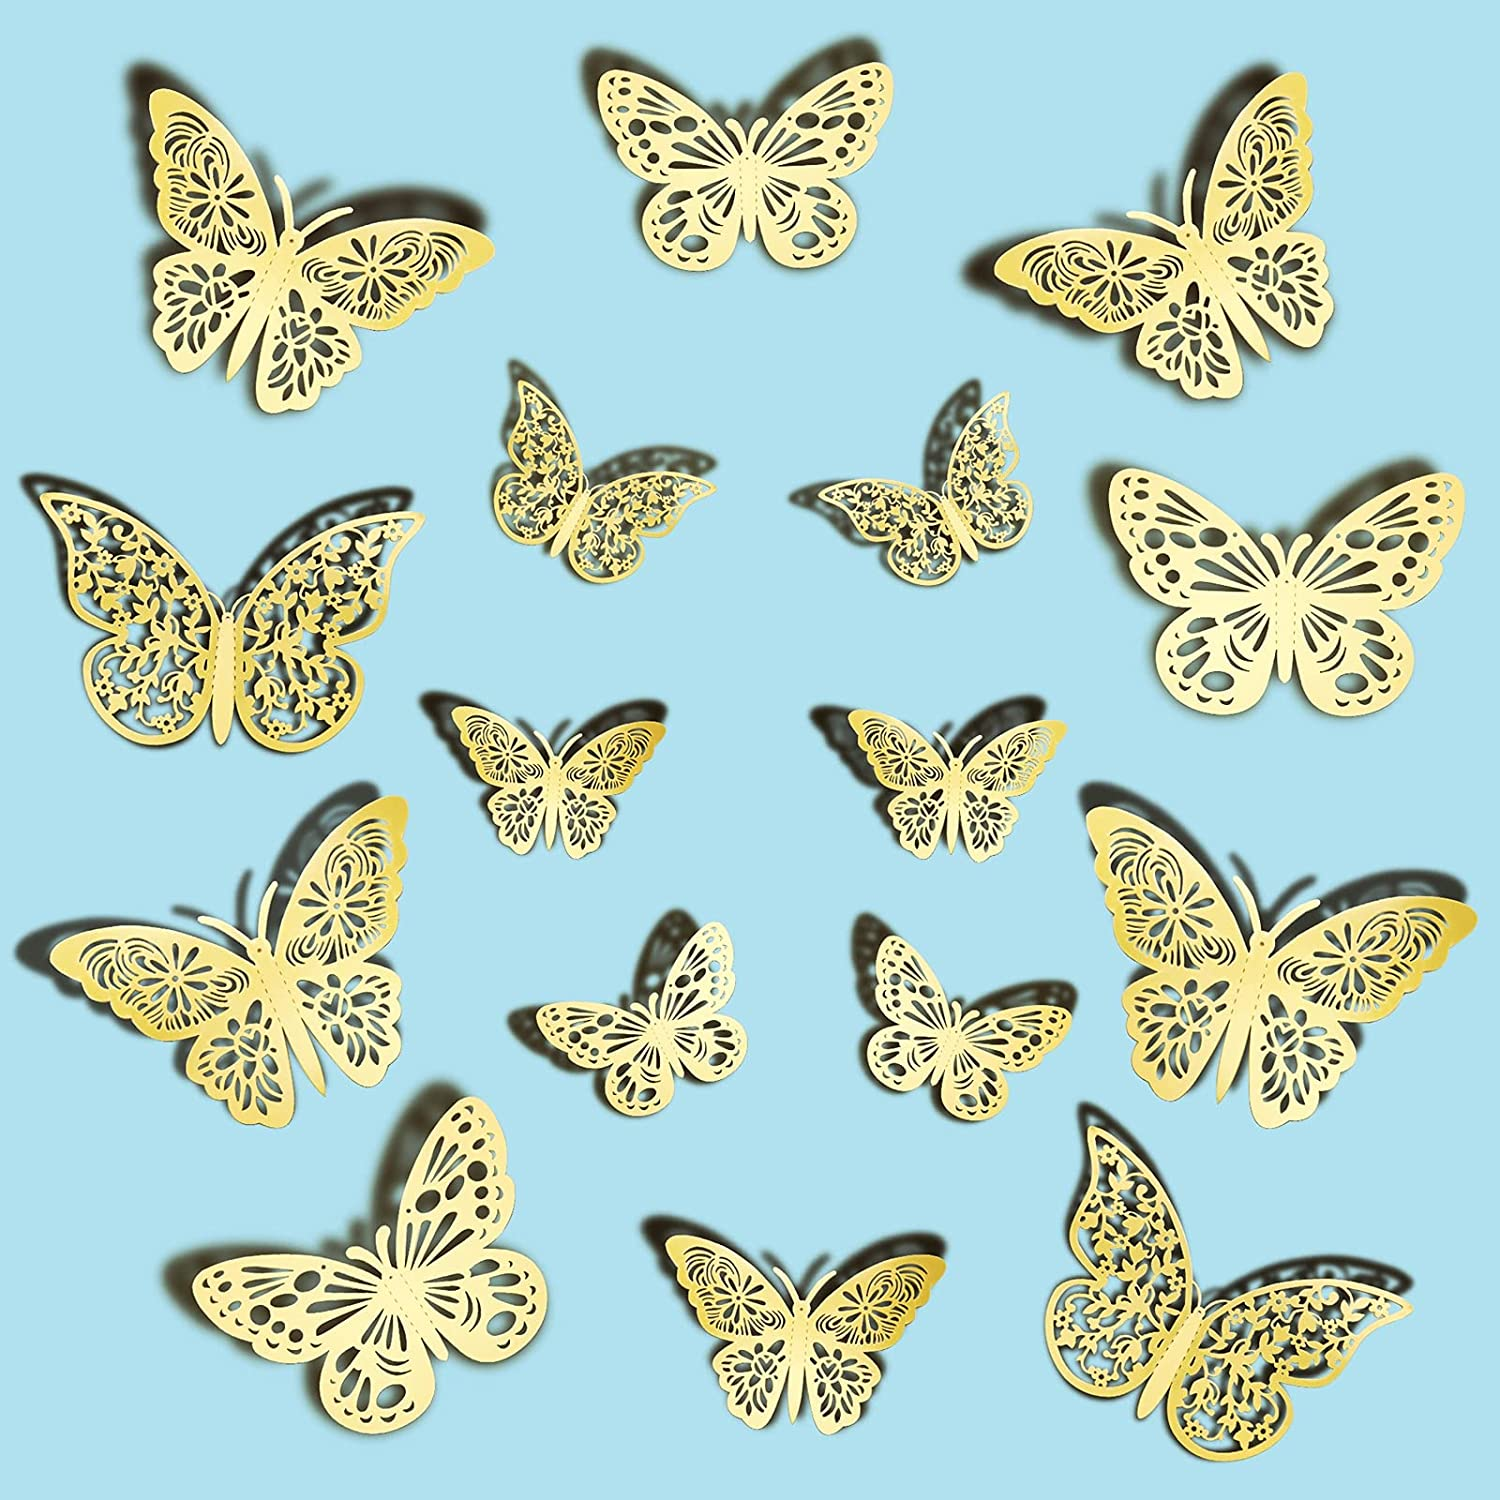 Ryangic 3D Butterfly Wall Decor 36pcs Shiny Gold Butterflies Wall Stickers 3 Sizes & 3 Hollow-Carved Design Butterfly Wall Decals DIY Butterfly Decorations for Bedroom Living Room Home Party (Gold)